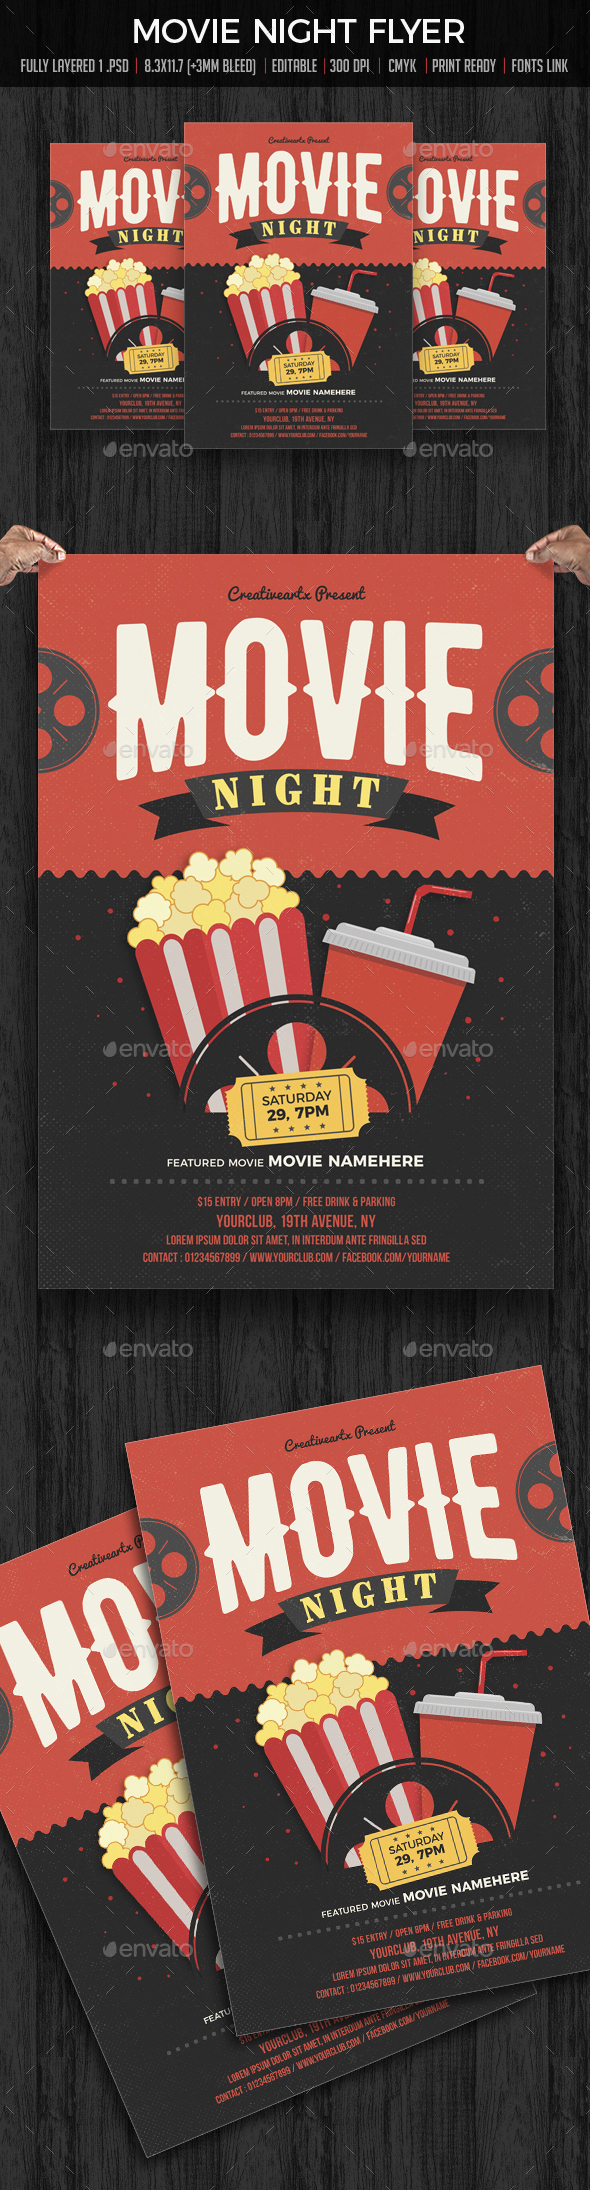 Movie Night / Movie Time Flyer - Flyers Print Templates